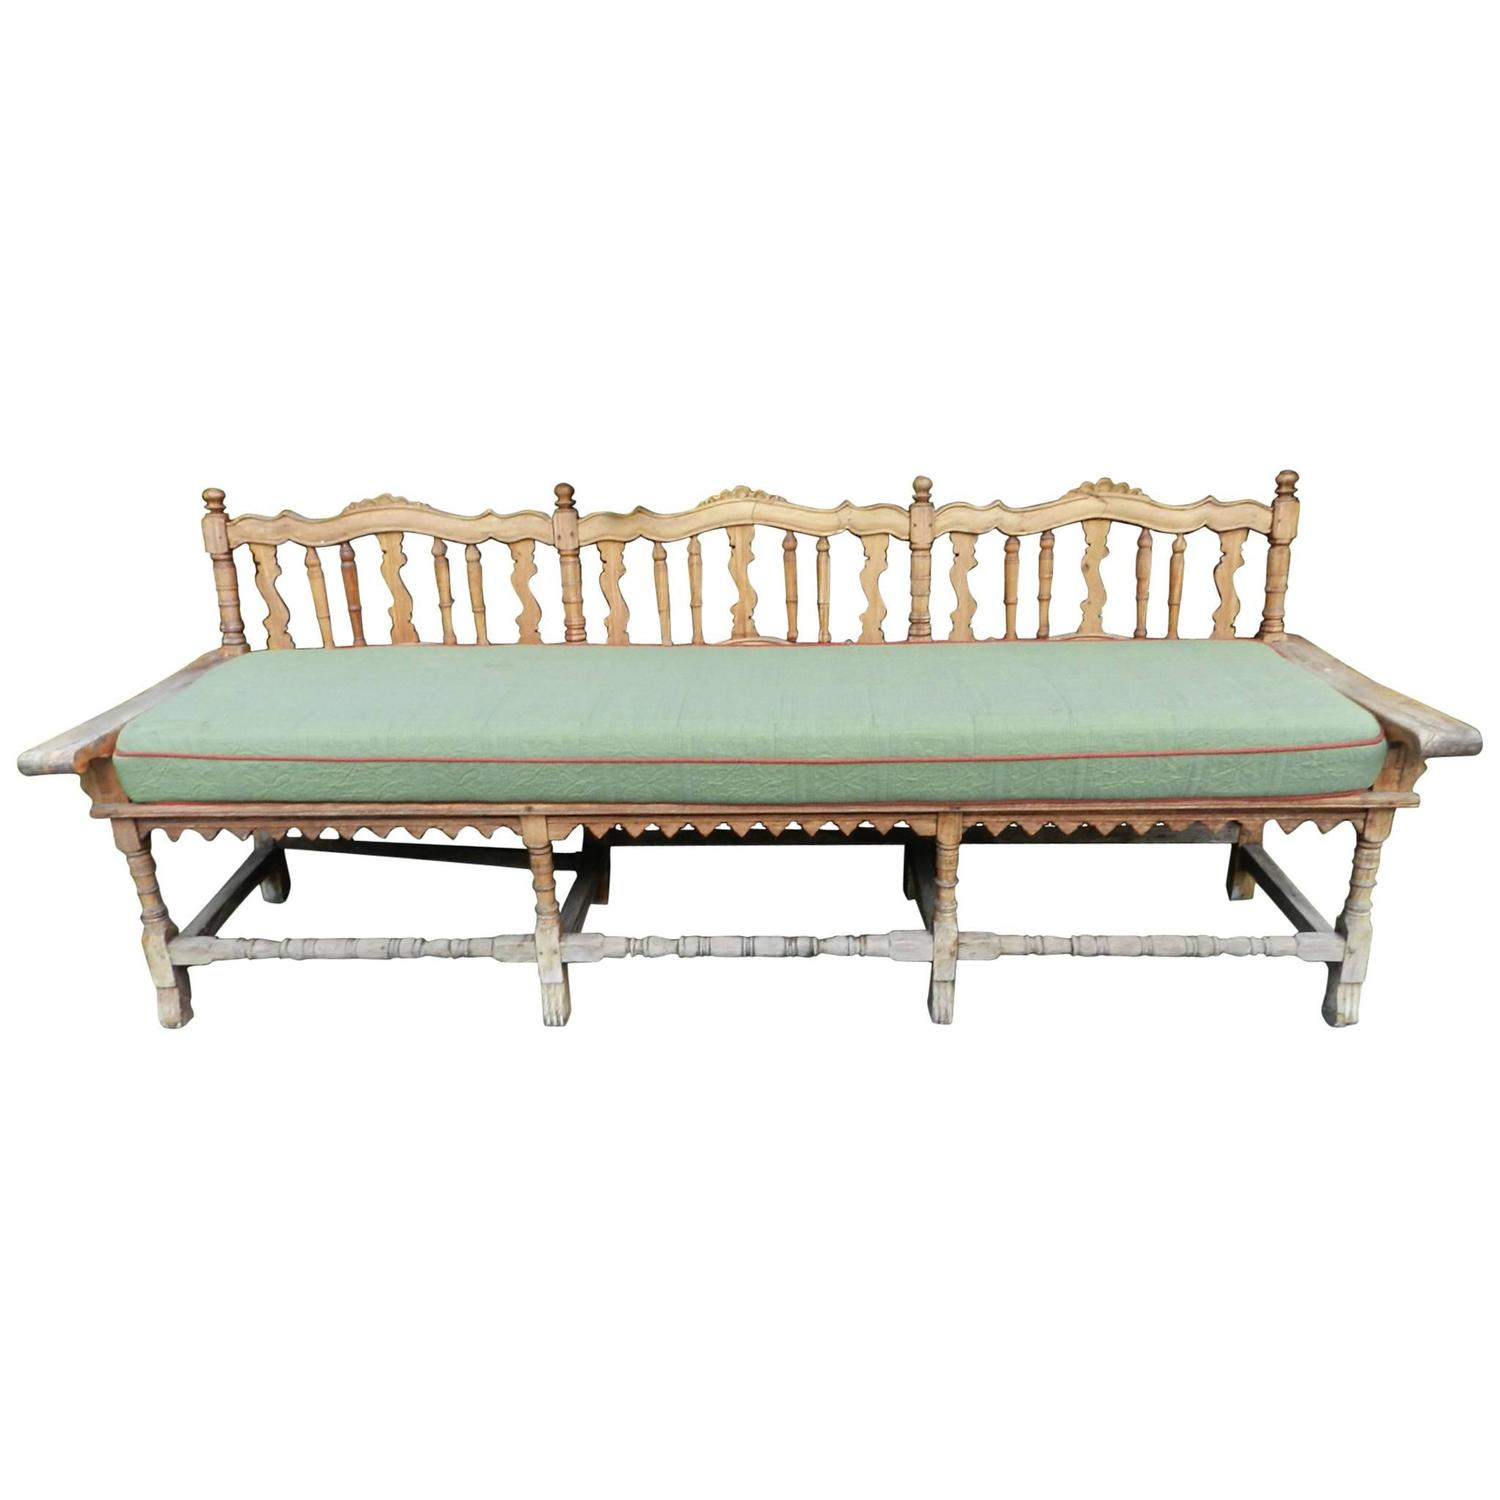 Antique 19th Century Sabino Wood Or Pine Mexican Bench At 1stdibs